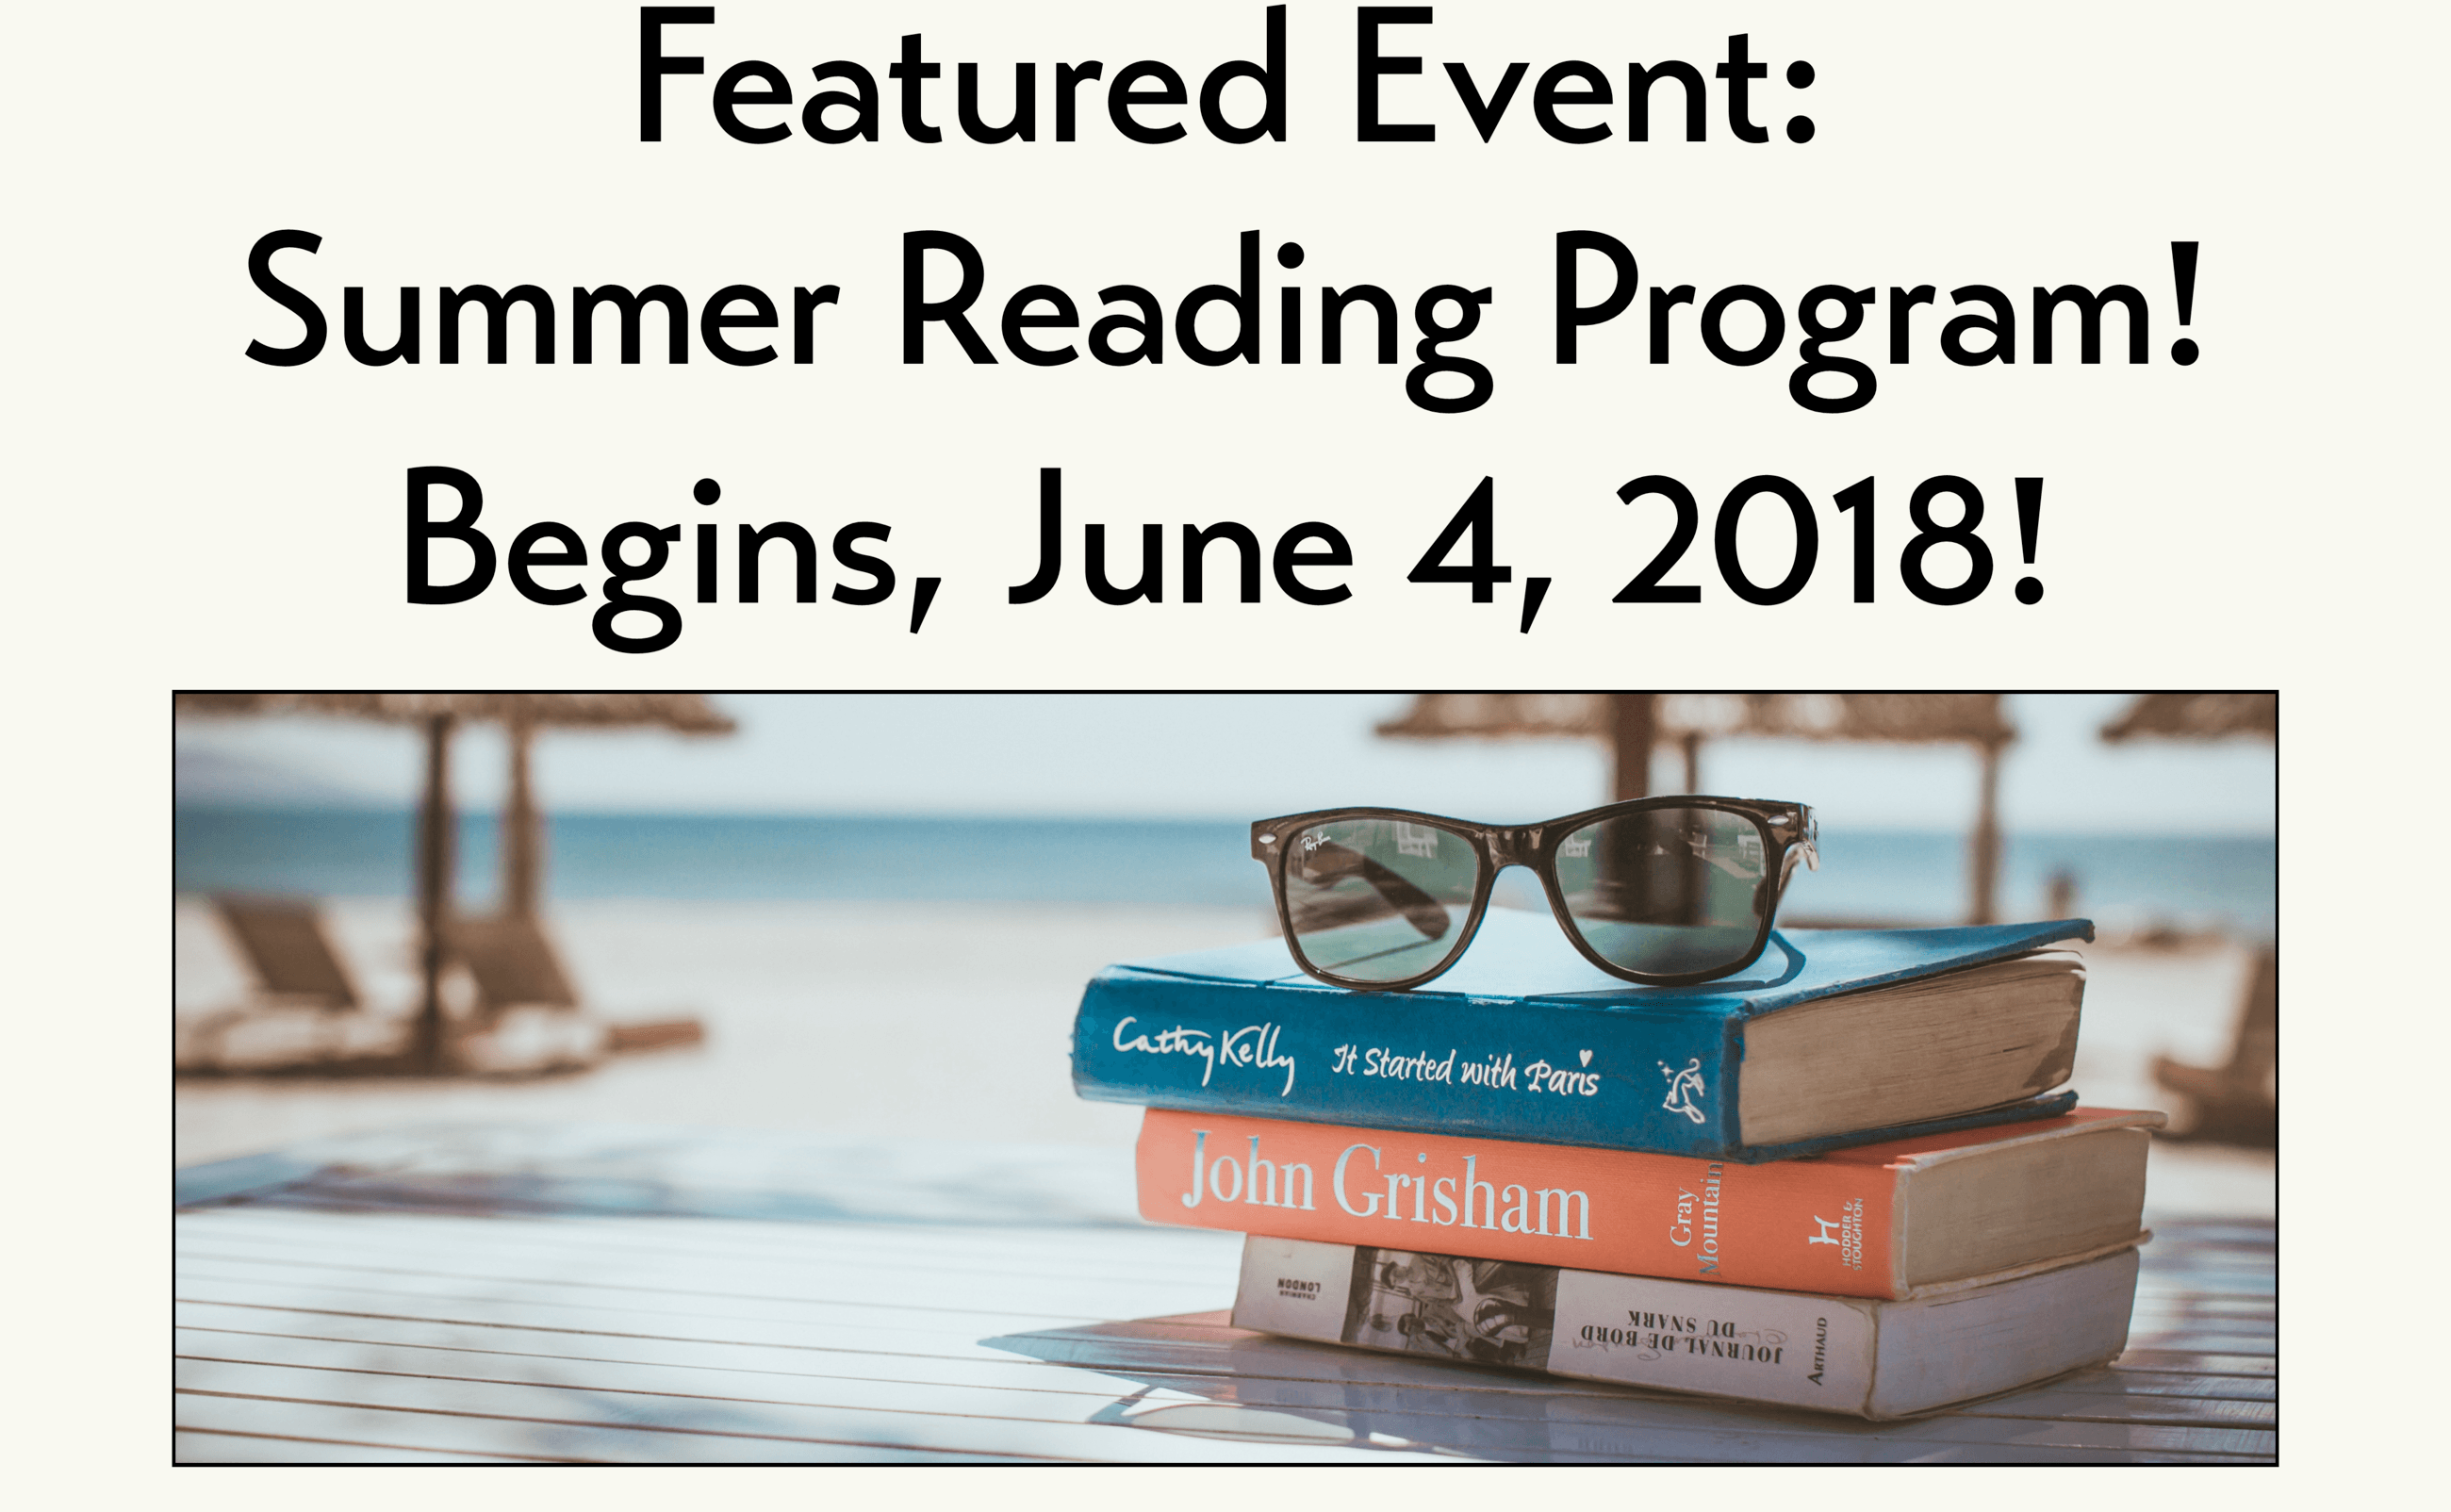 Featured Event Summer Reading